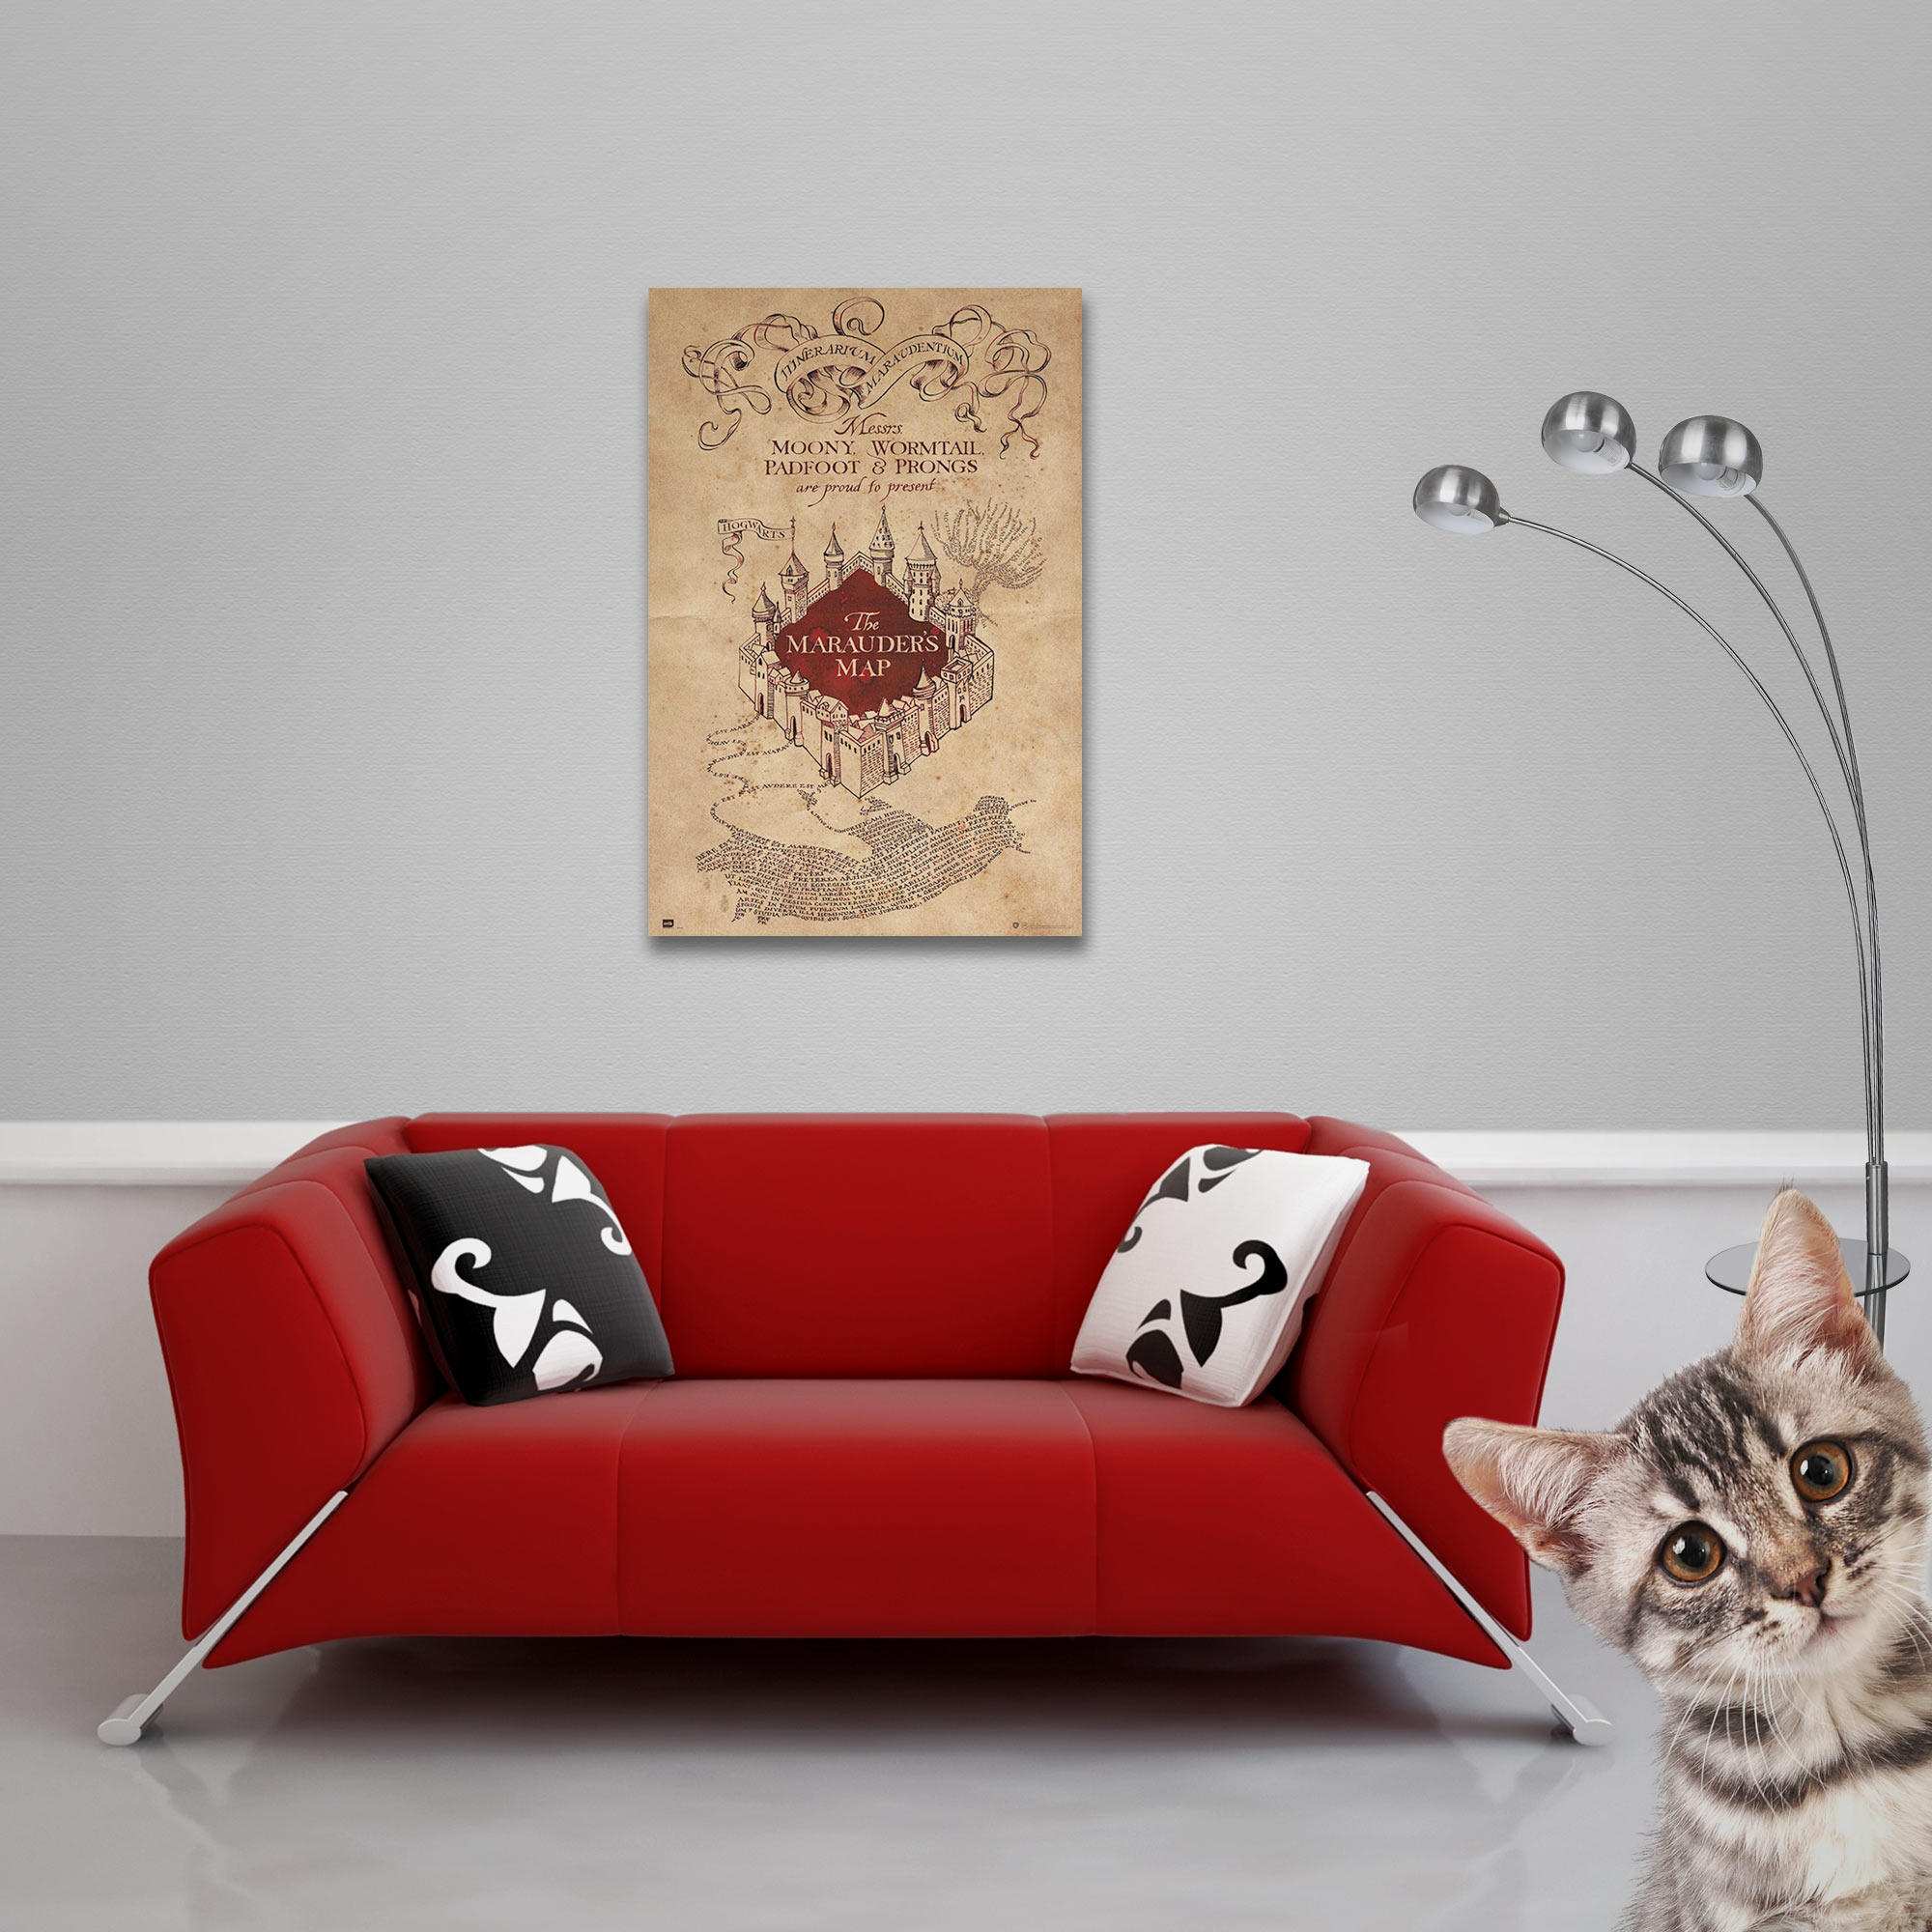 Harry Potter - Poster - Hogwarts - Marauders Map Vorschau Sofa